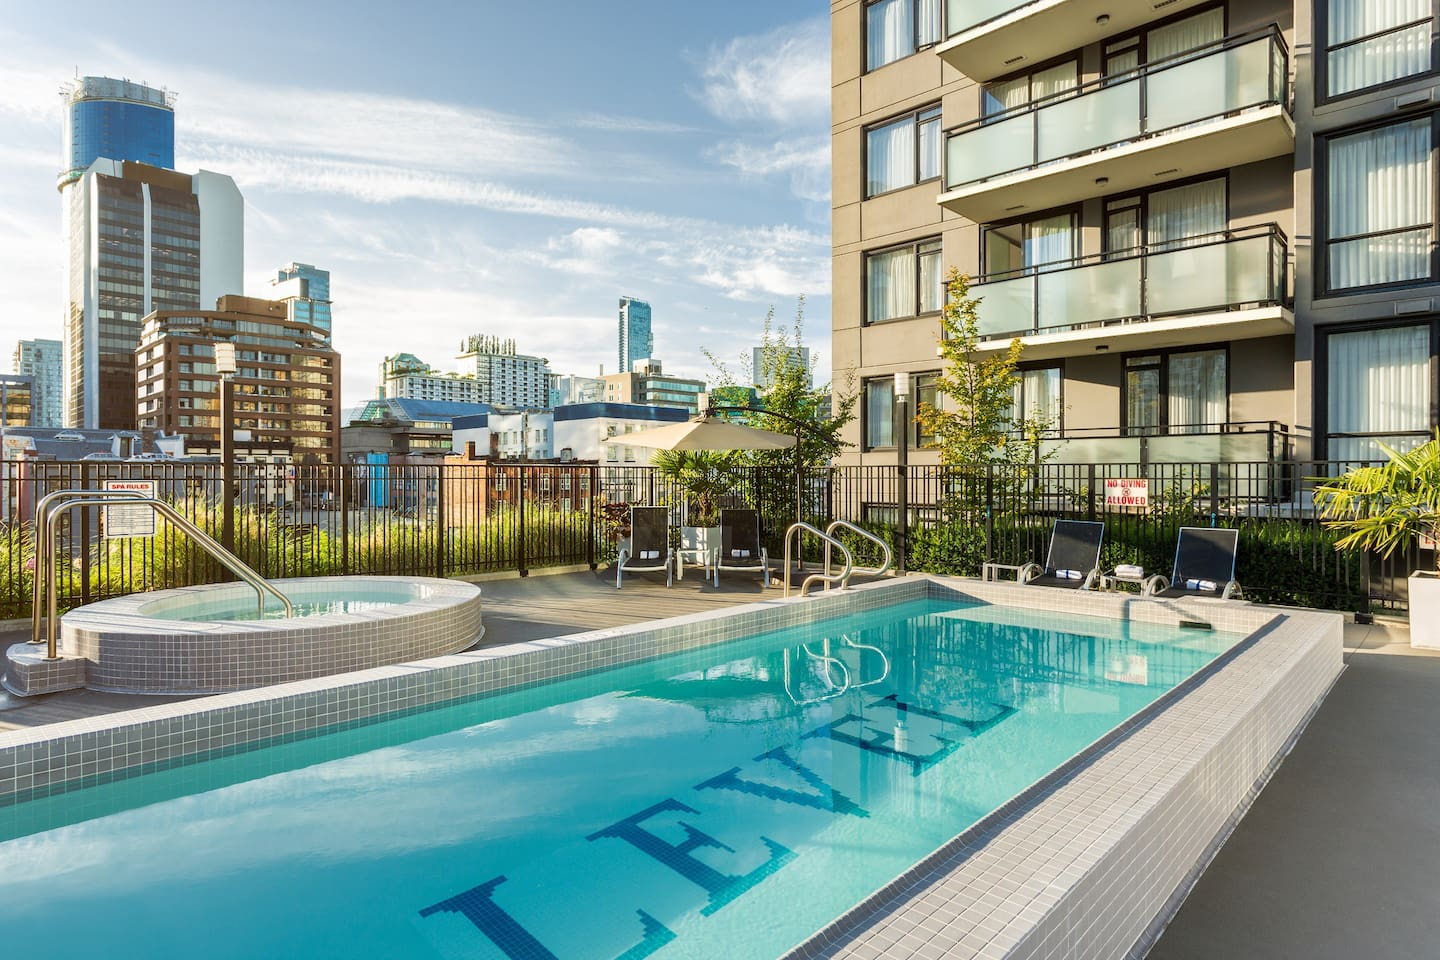 Enjoy our outdoor rooftop heated saltwater pool and hot tub